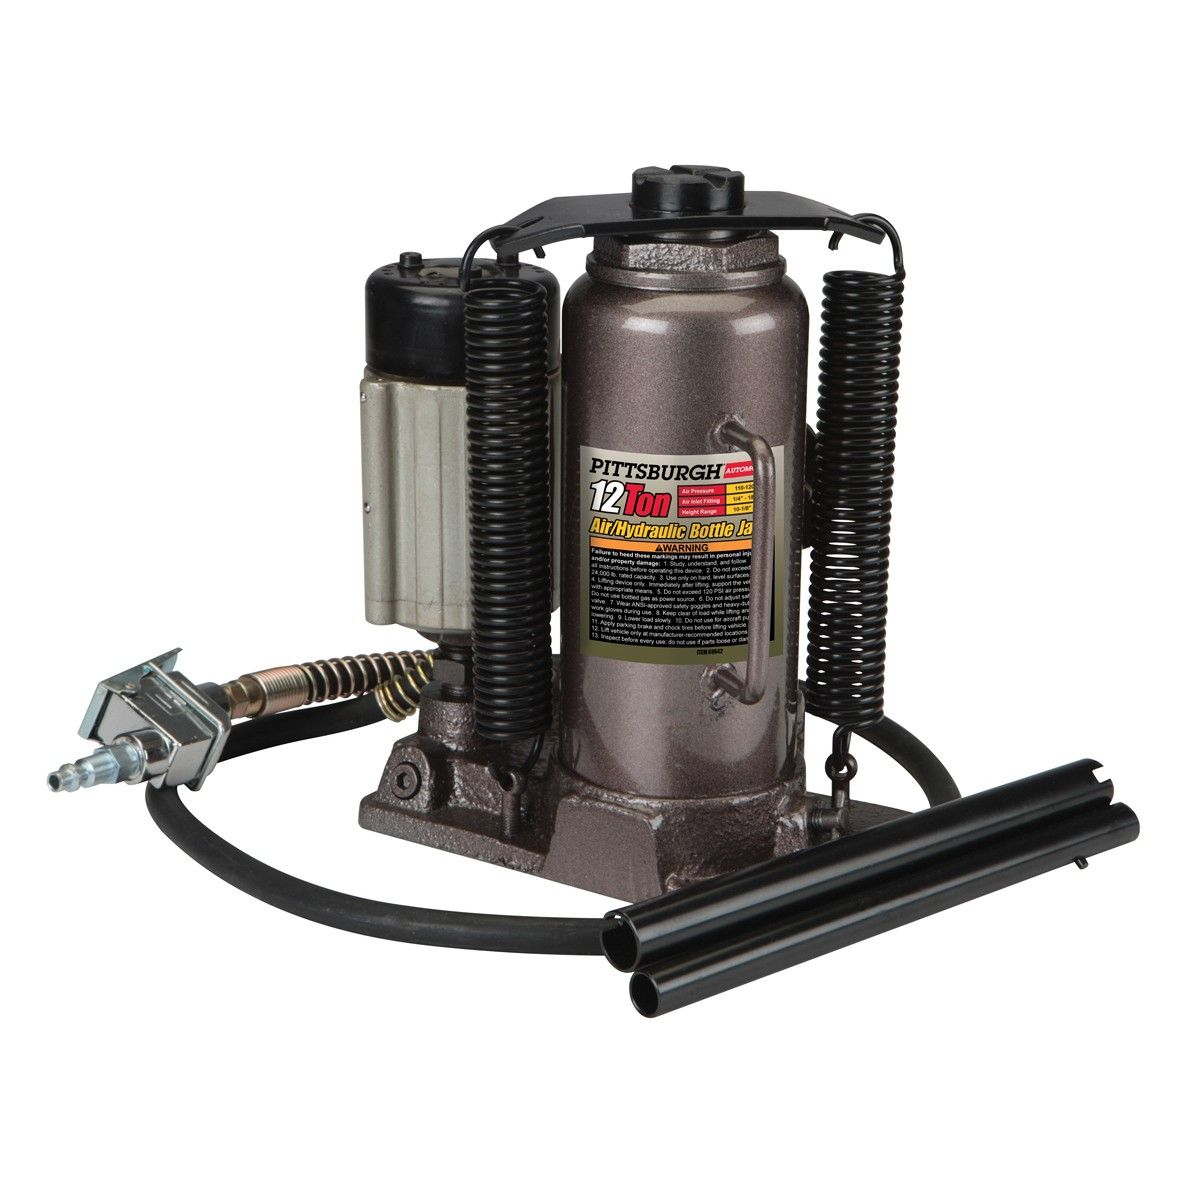 12 ton Air/Hydraulic Bottle Jack Automotive shops